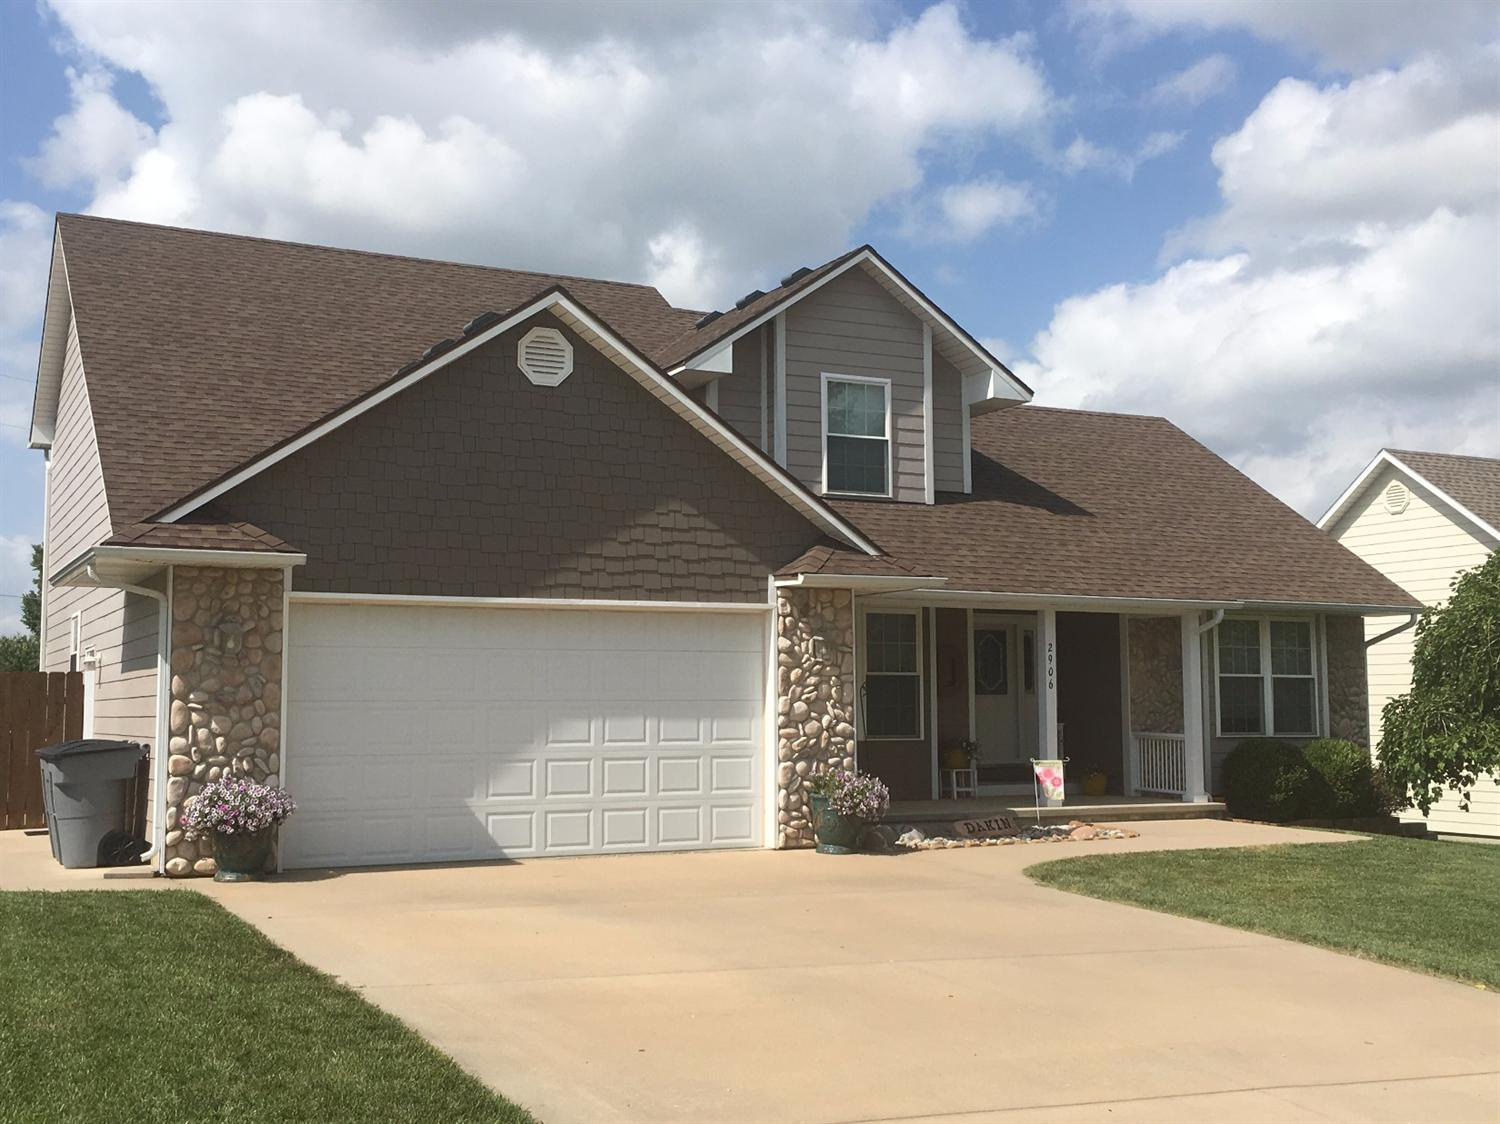 2906 29th Terrace, Emporia, KS 66801